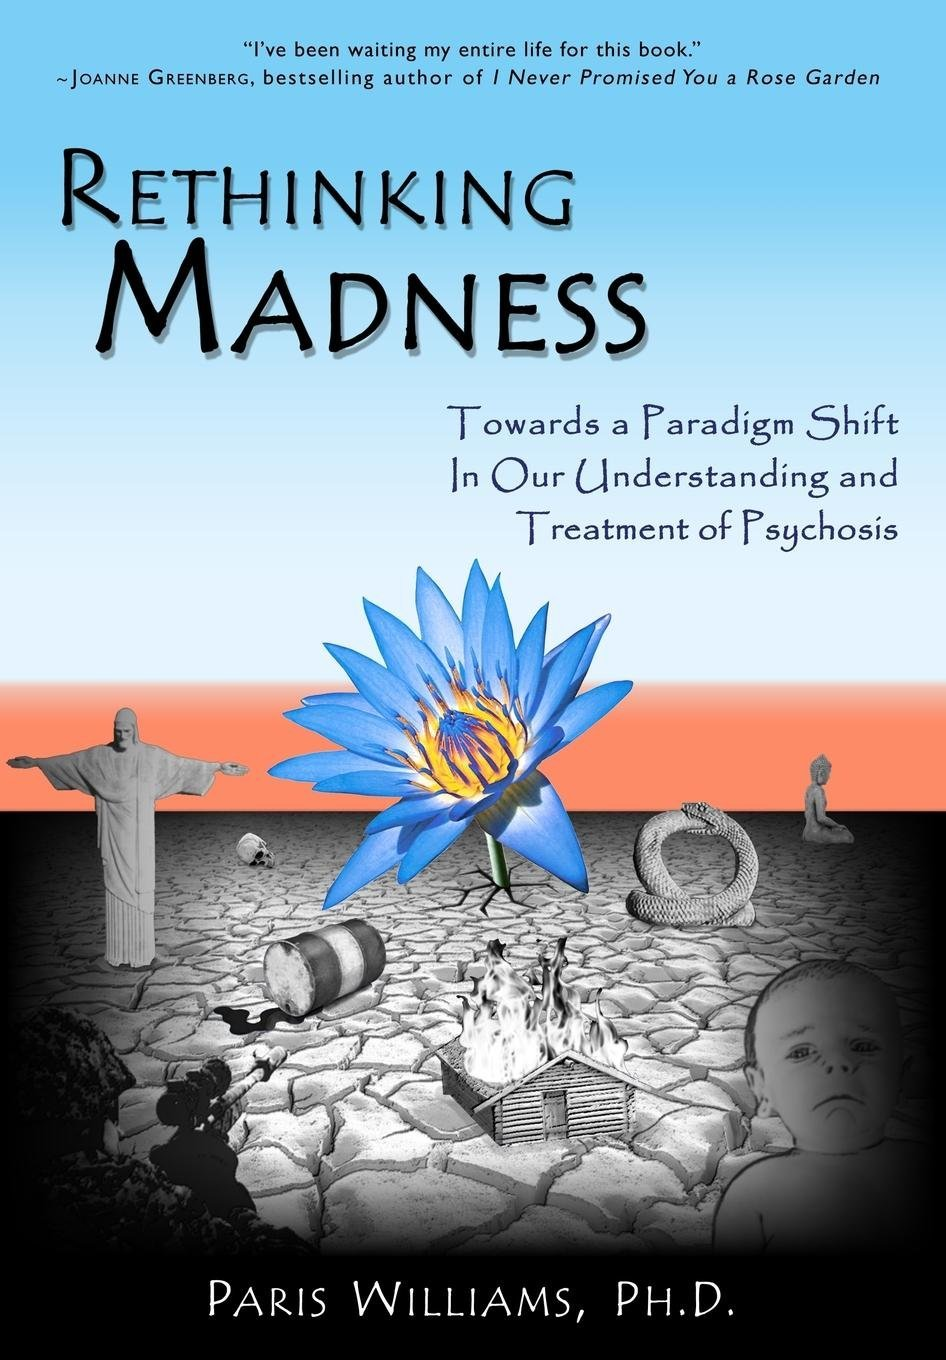 Rethinking Madness: Towards a Paradigm Shift in Our Understanding